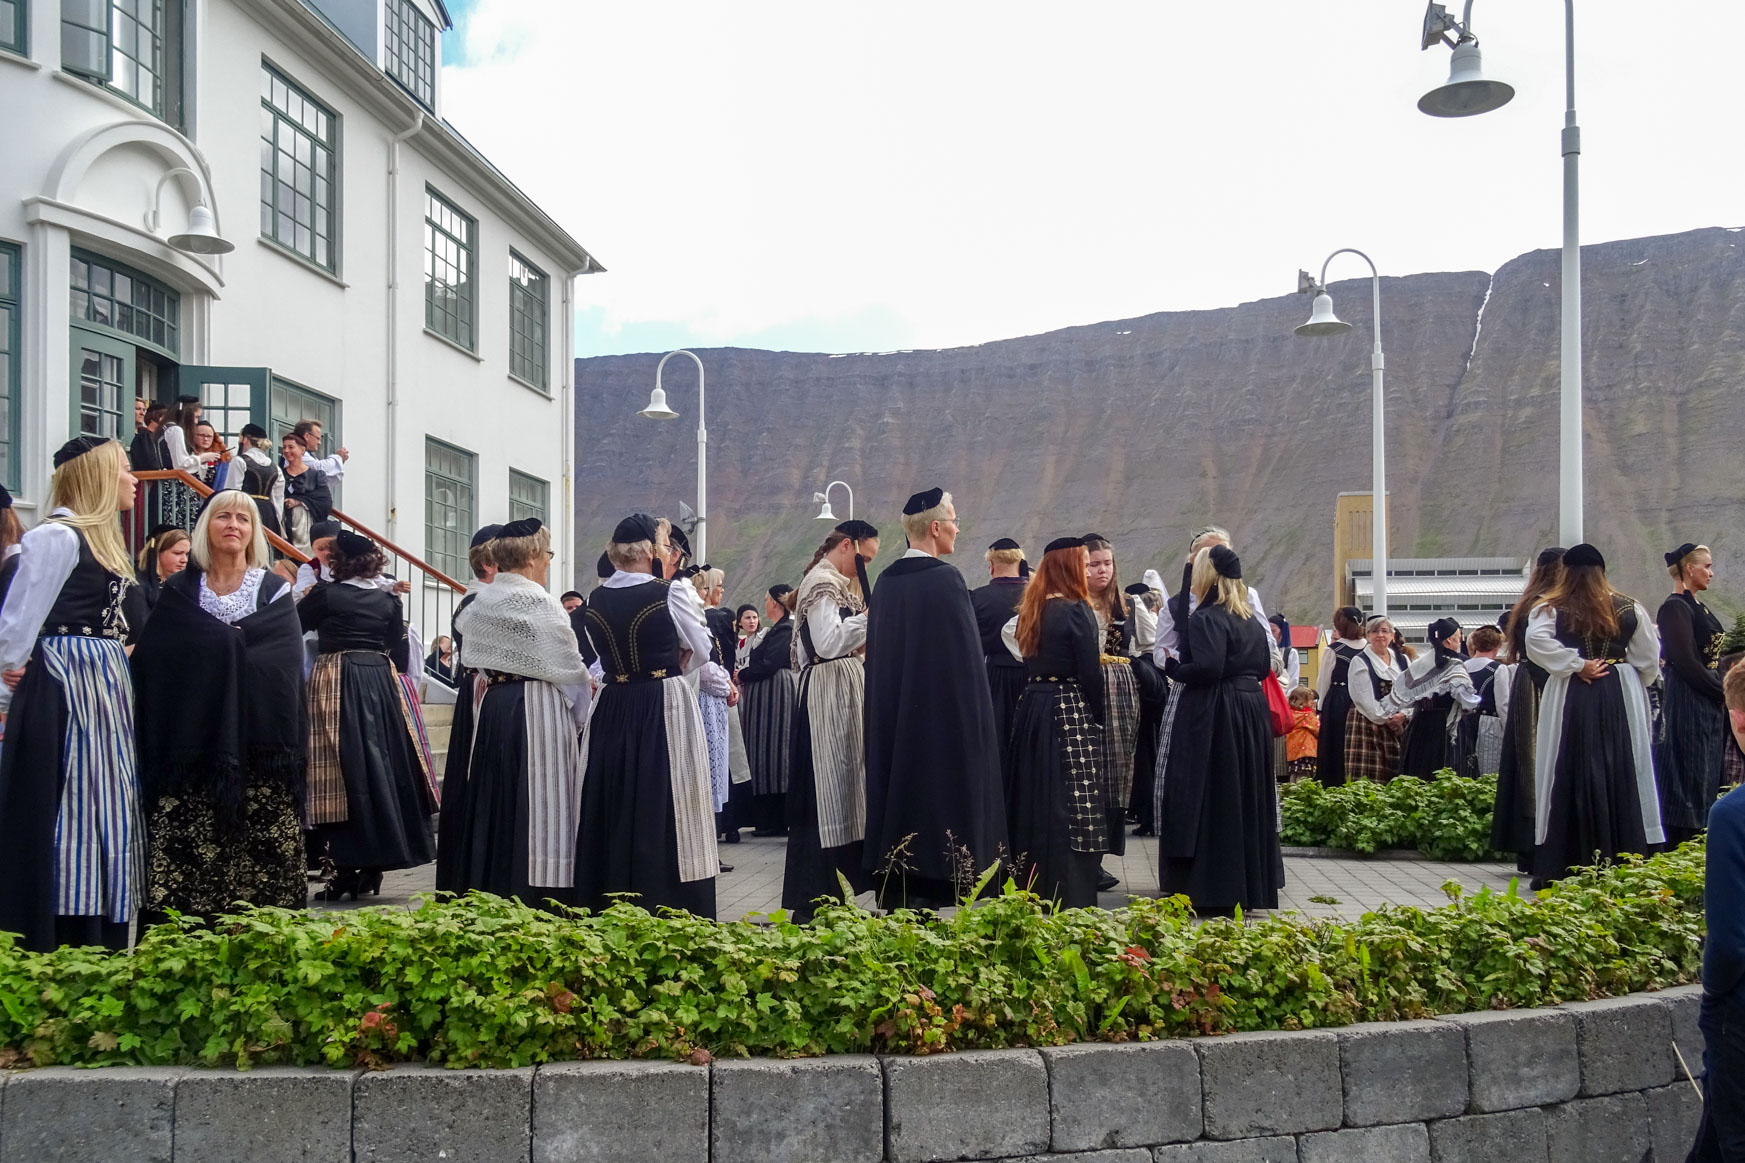 Isländerinnen in traditioneller Tracht